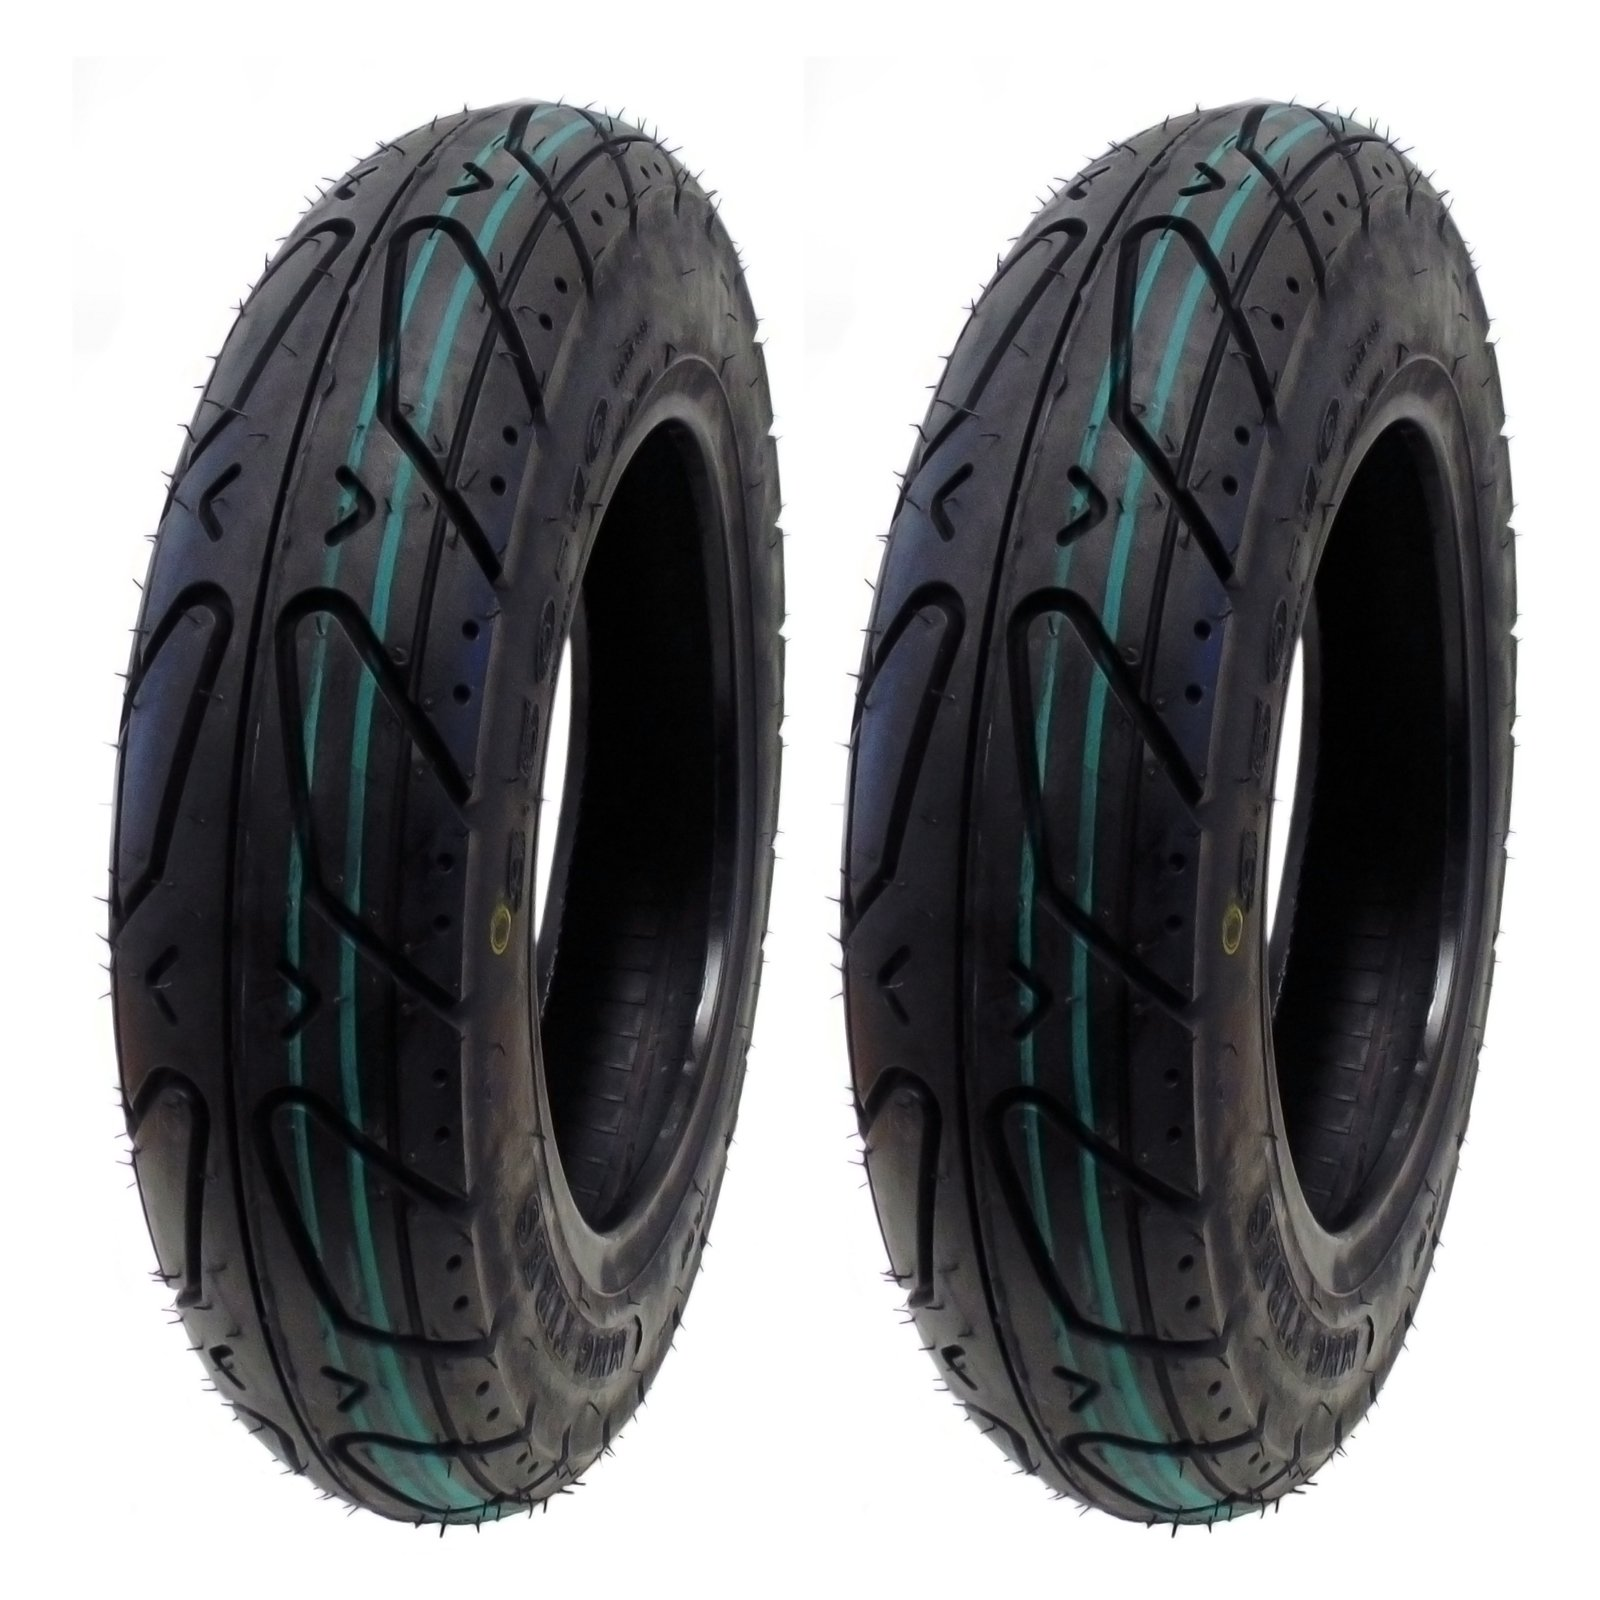 MMG Set of 2 Scooter Tubeless Tires 3.50-10 Front or Rear, Fits on 10 Inch Rim by MMG